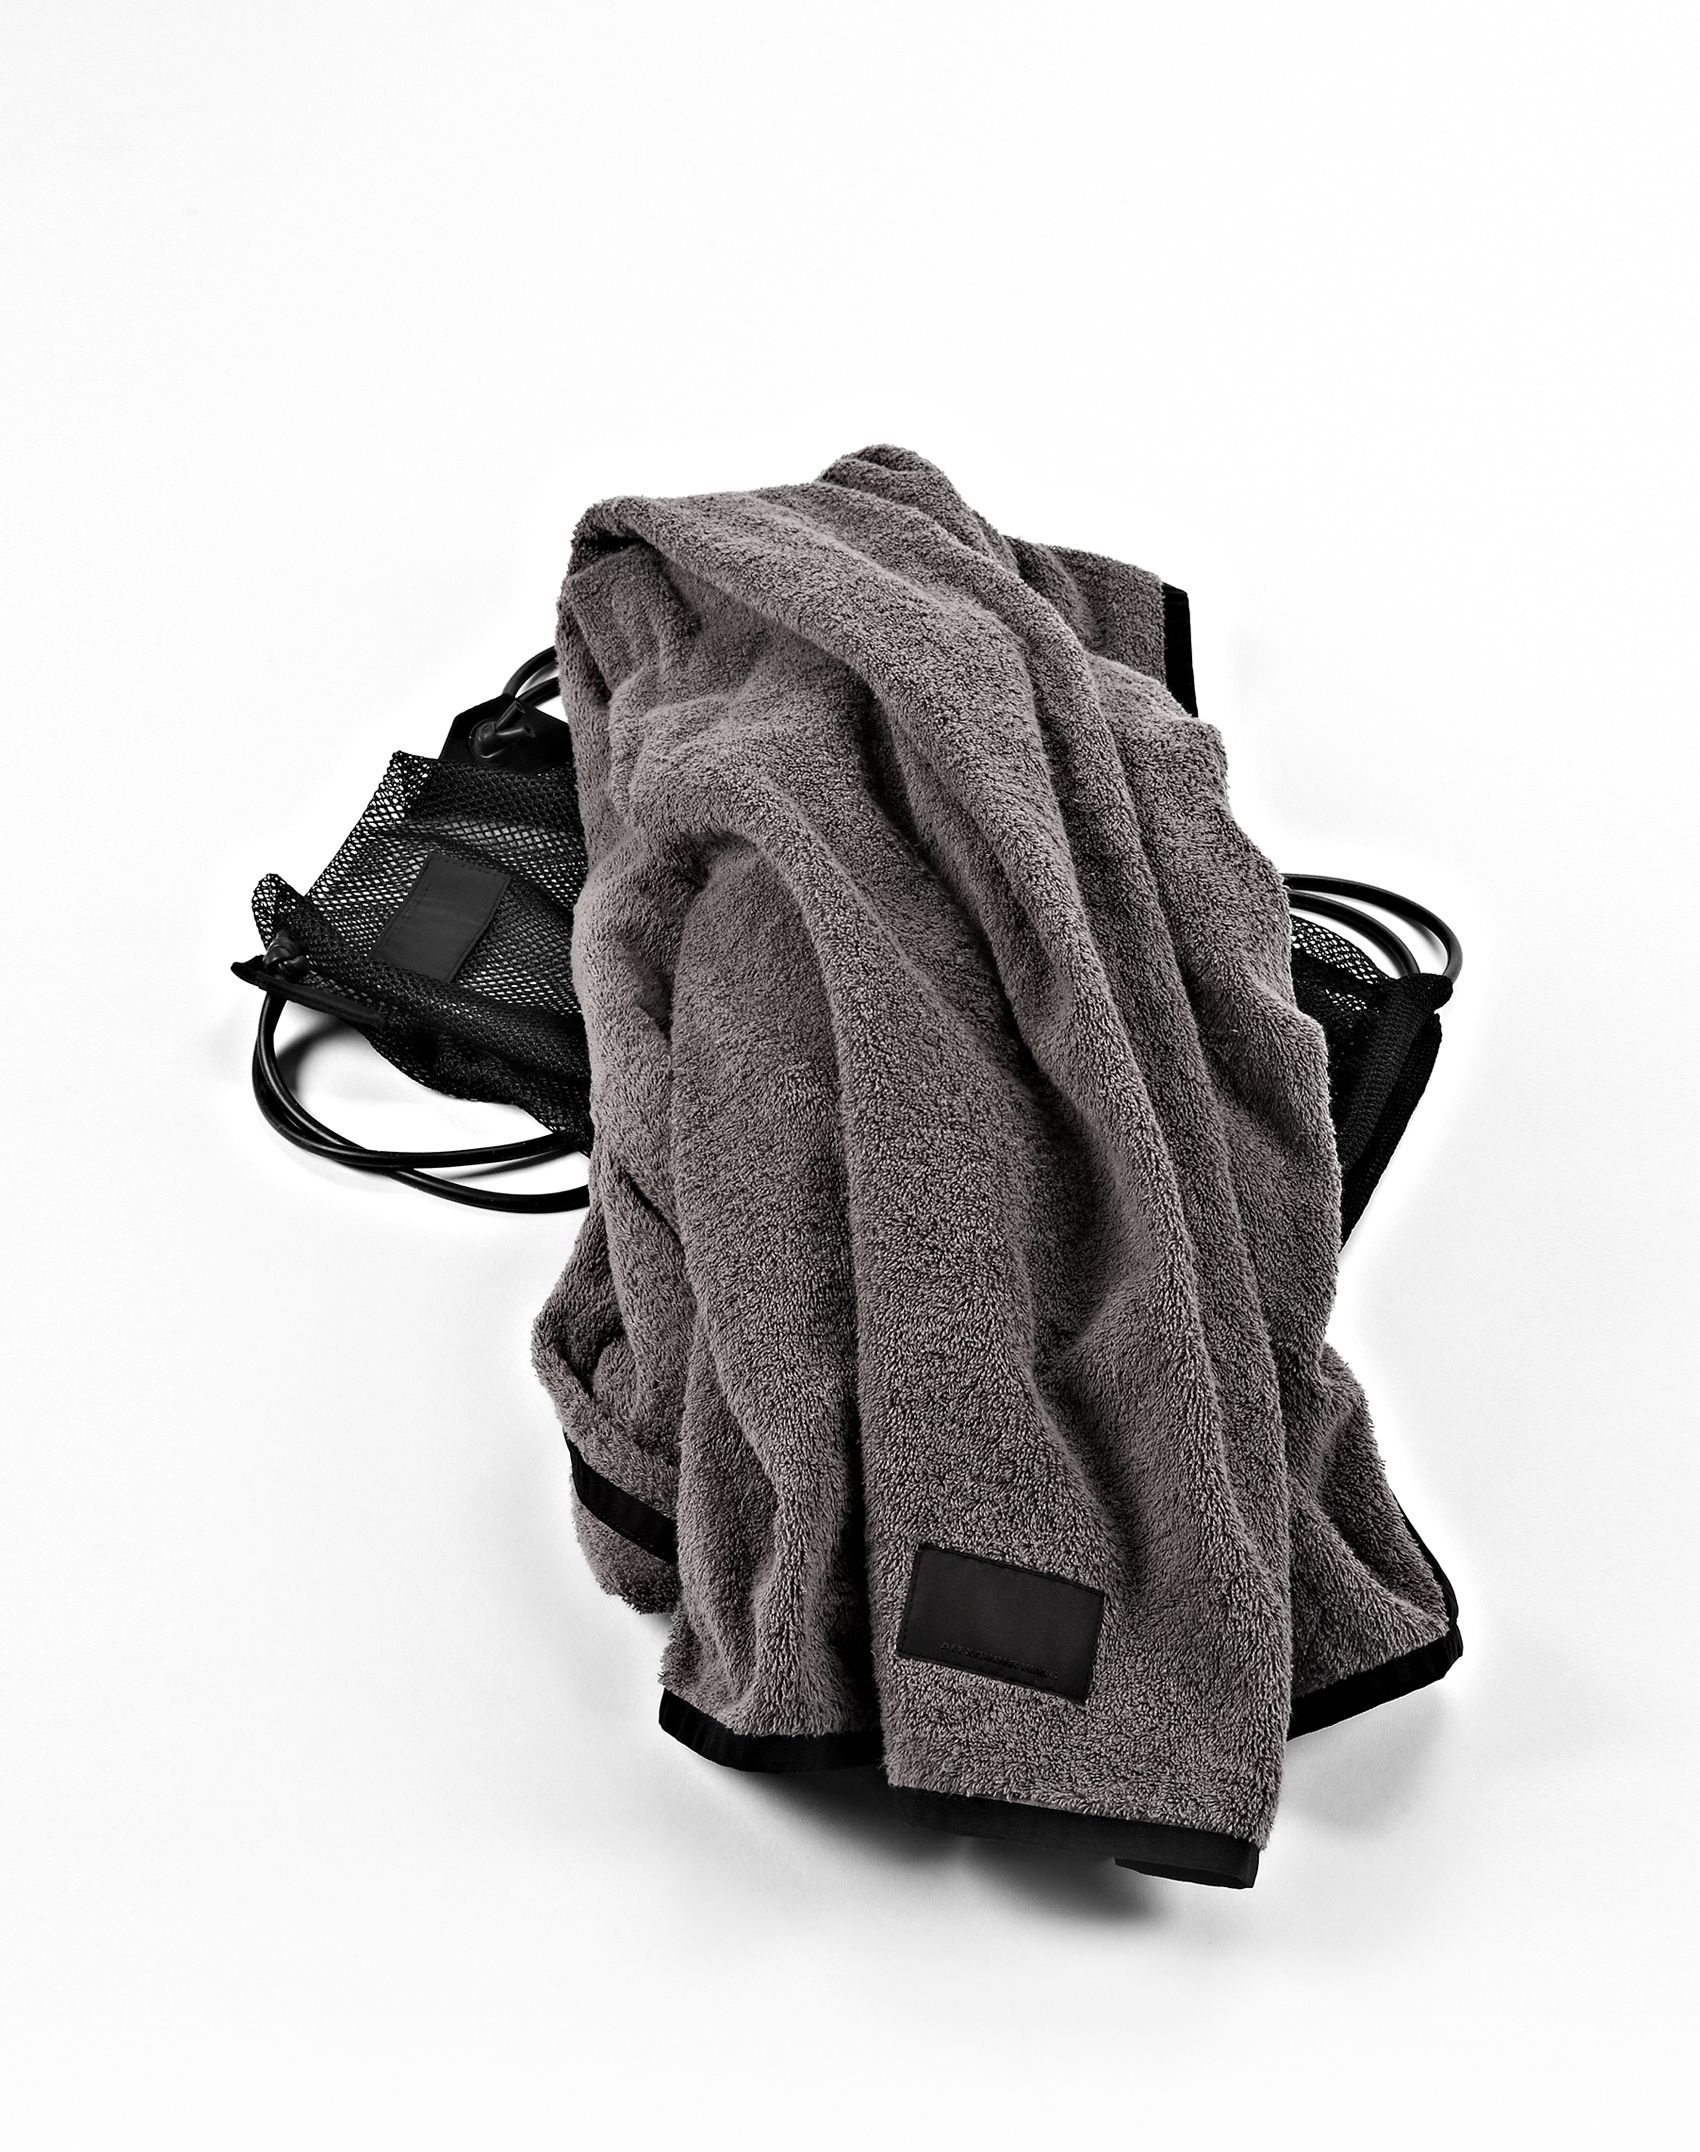 Alexander Wang Towelwith Mesh Bag in Gray for Men - Lyst 9afd29e6d5767